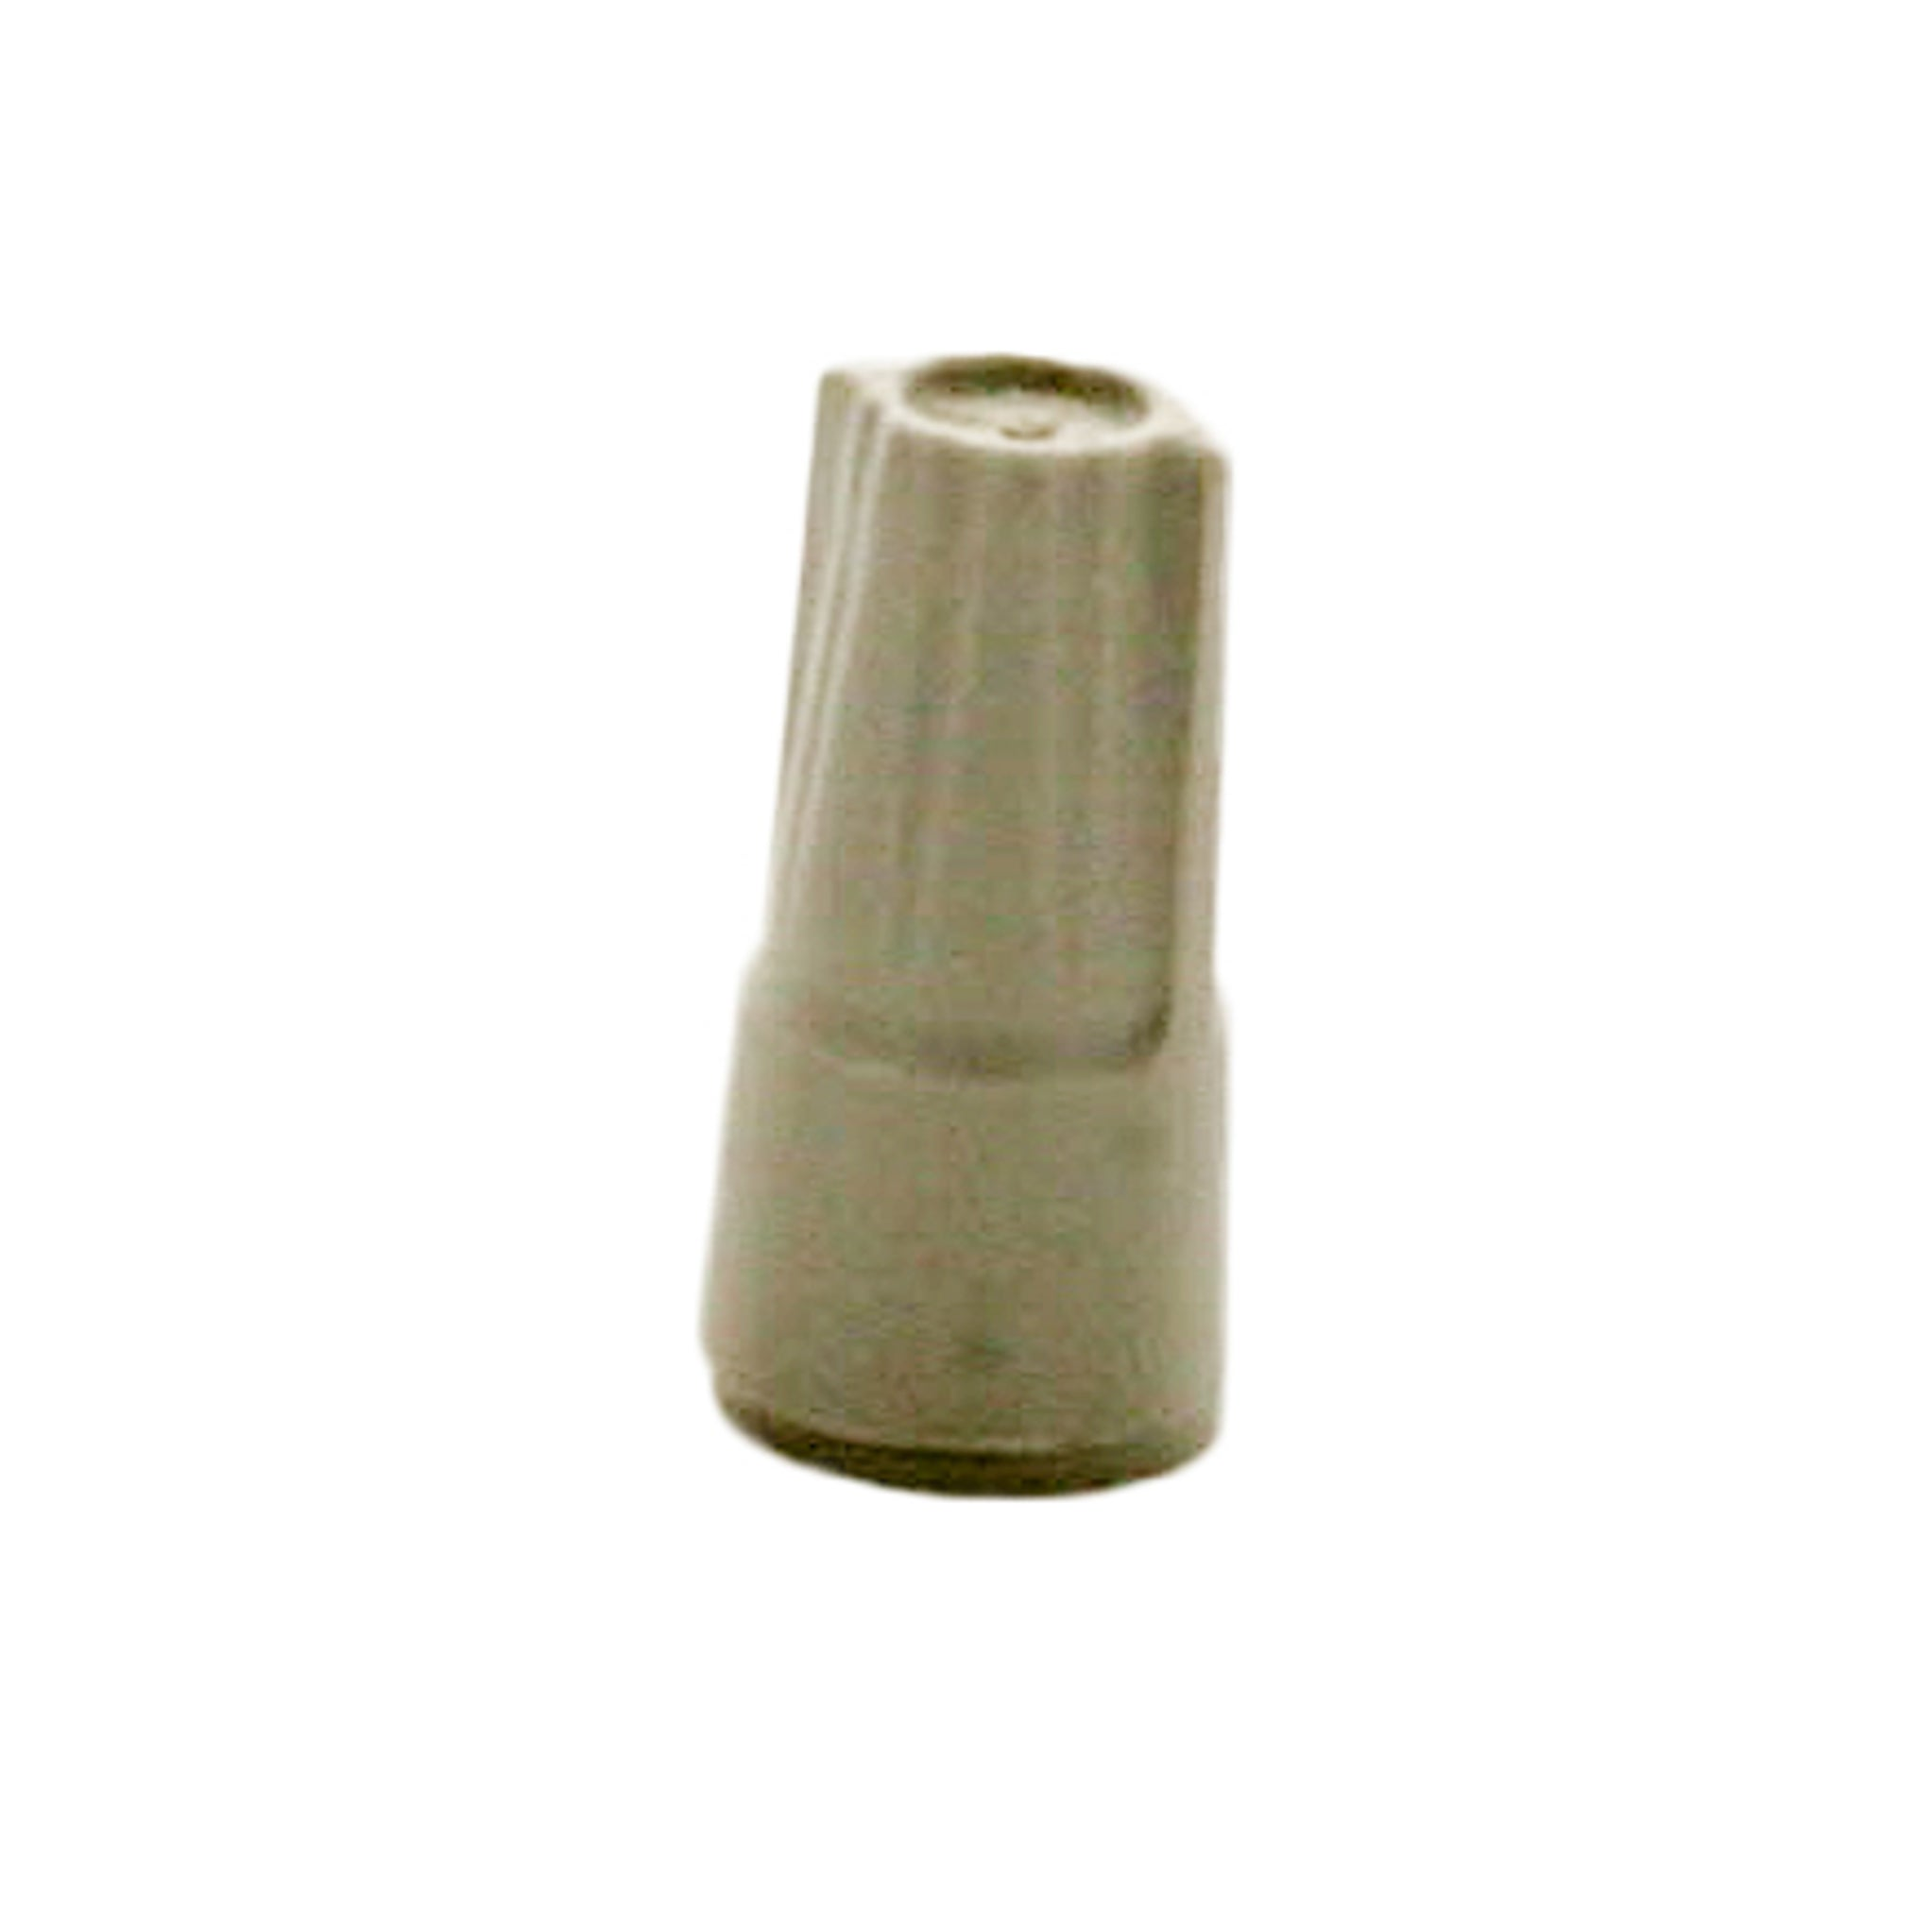 King Innovation - 10111 - Gray Waterproof Wire Connector (each)